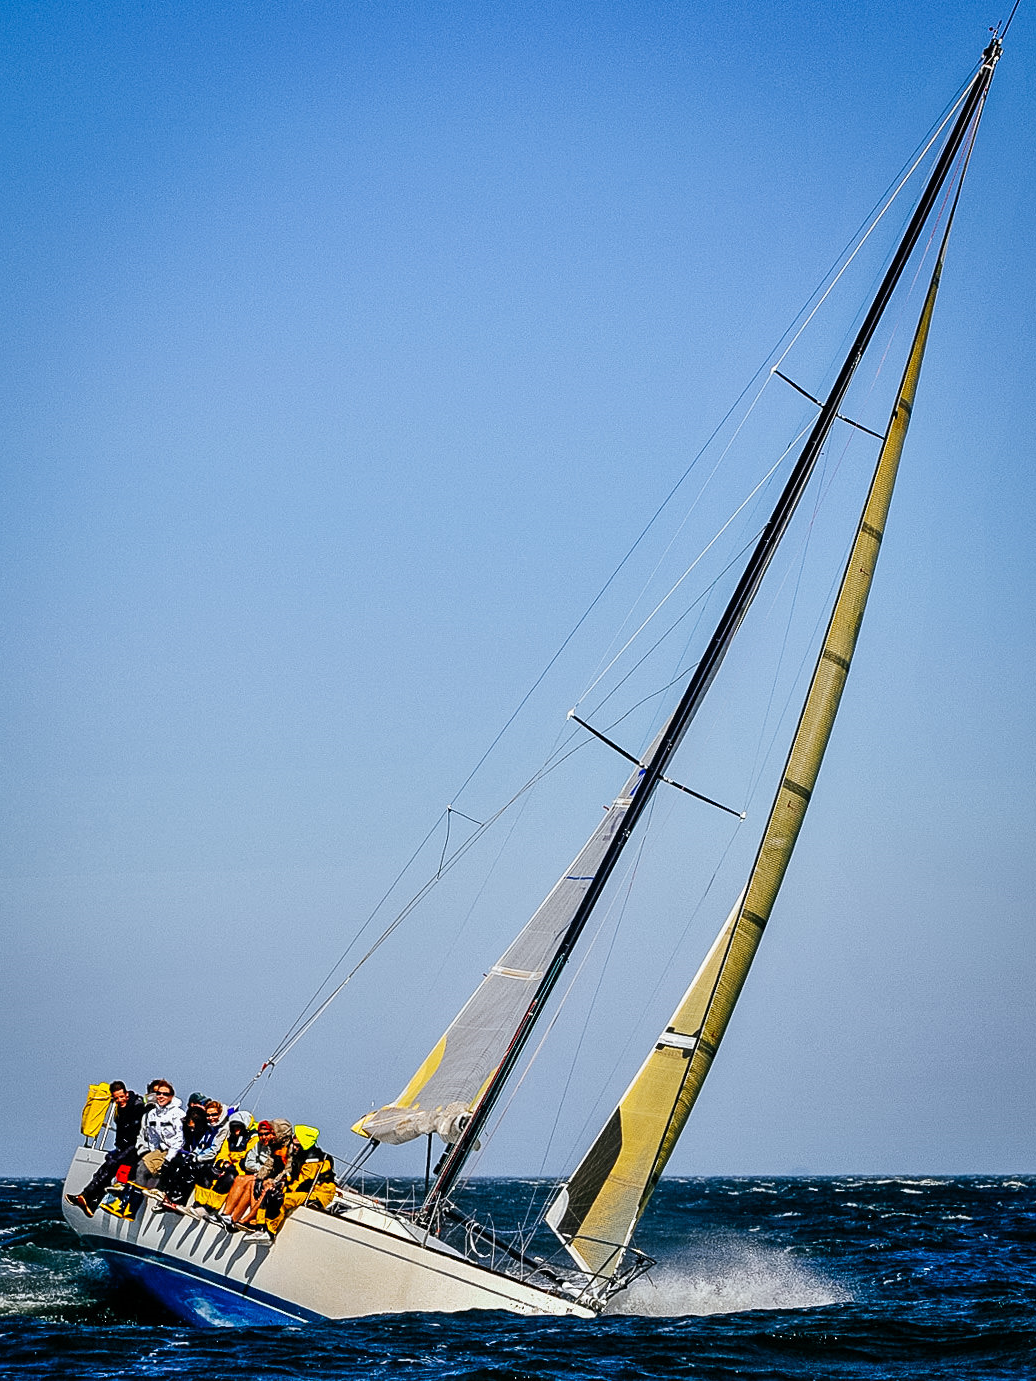 An Express 37 sailing with a Kevlar No. 4 genoa and two reefs in 35 knots of wind.